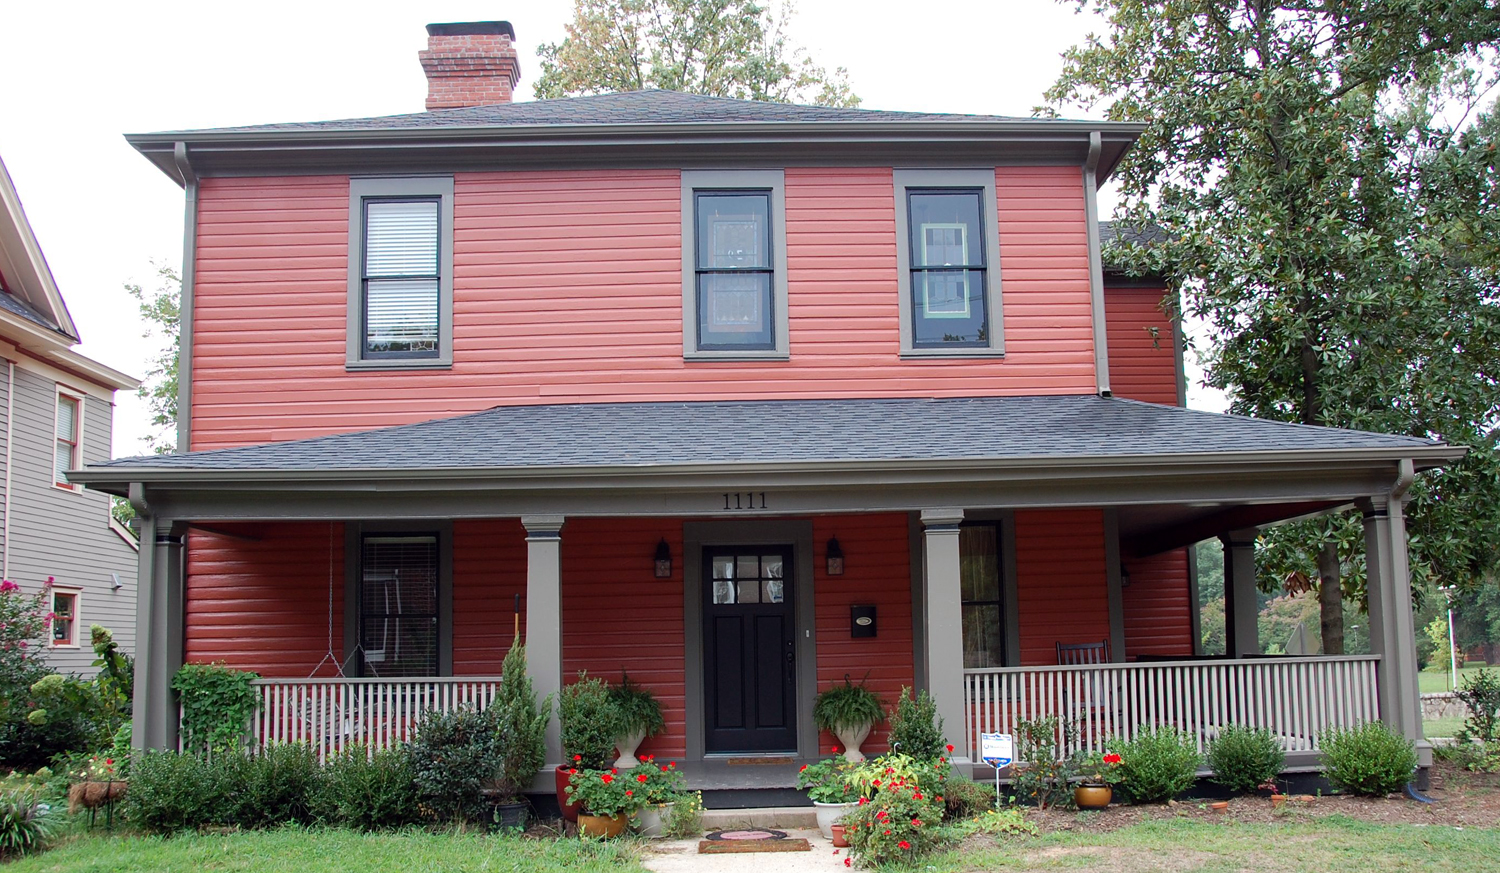 House colors four over one design - Red exterior wood paint plan ...